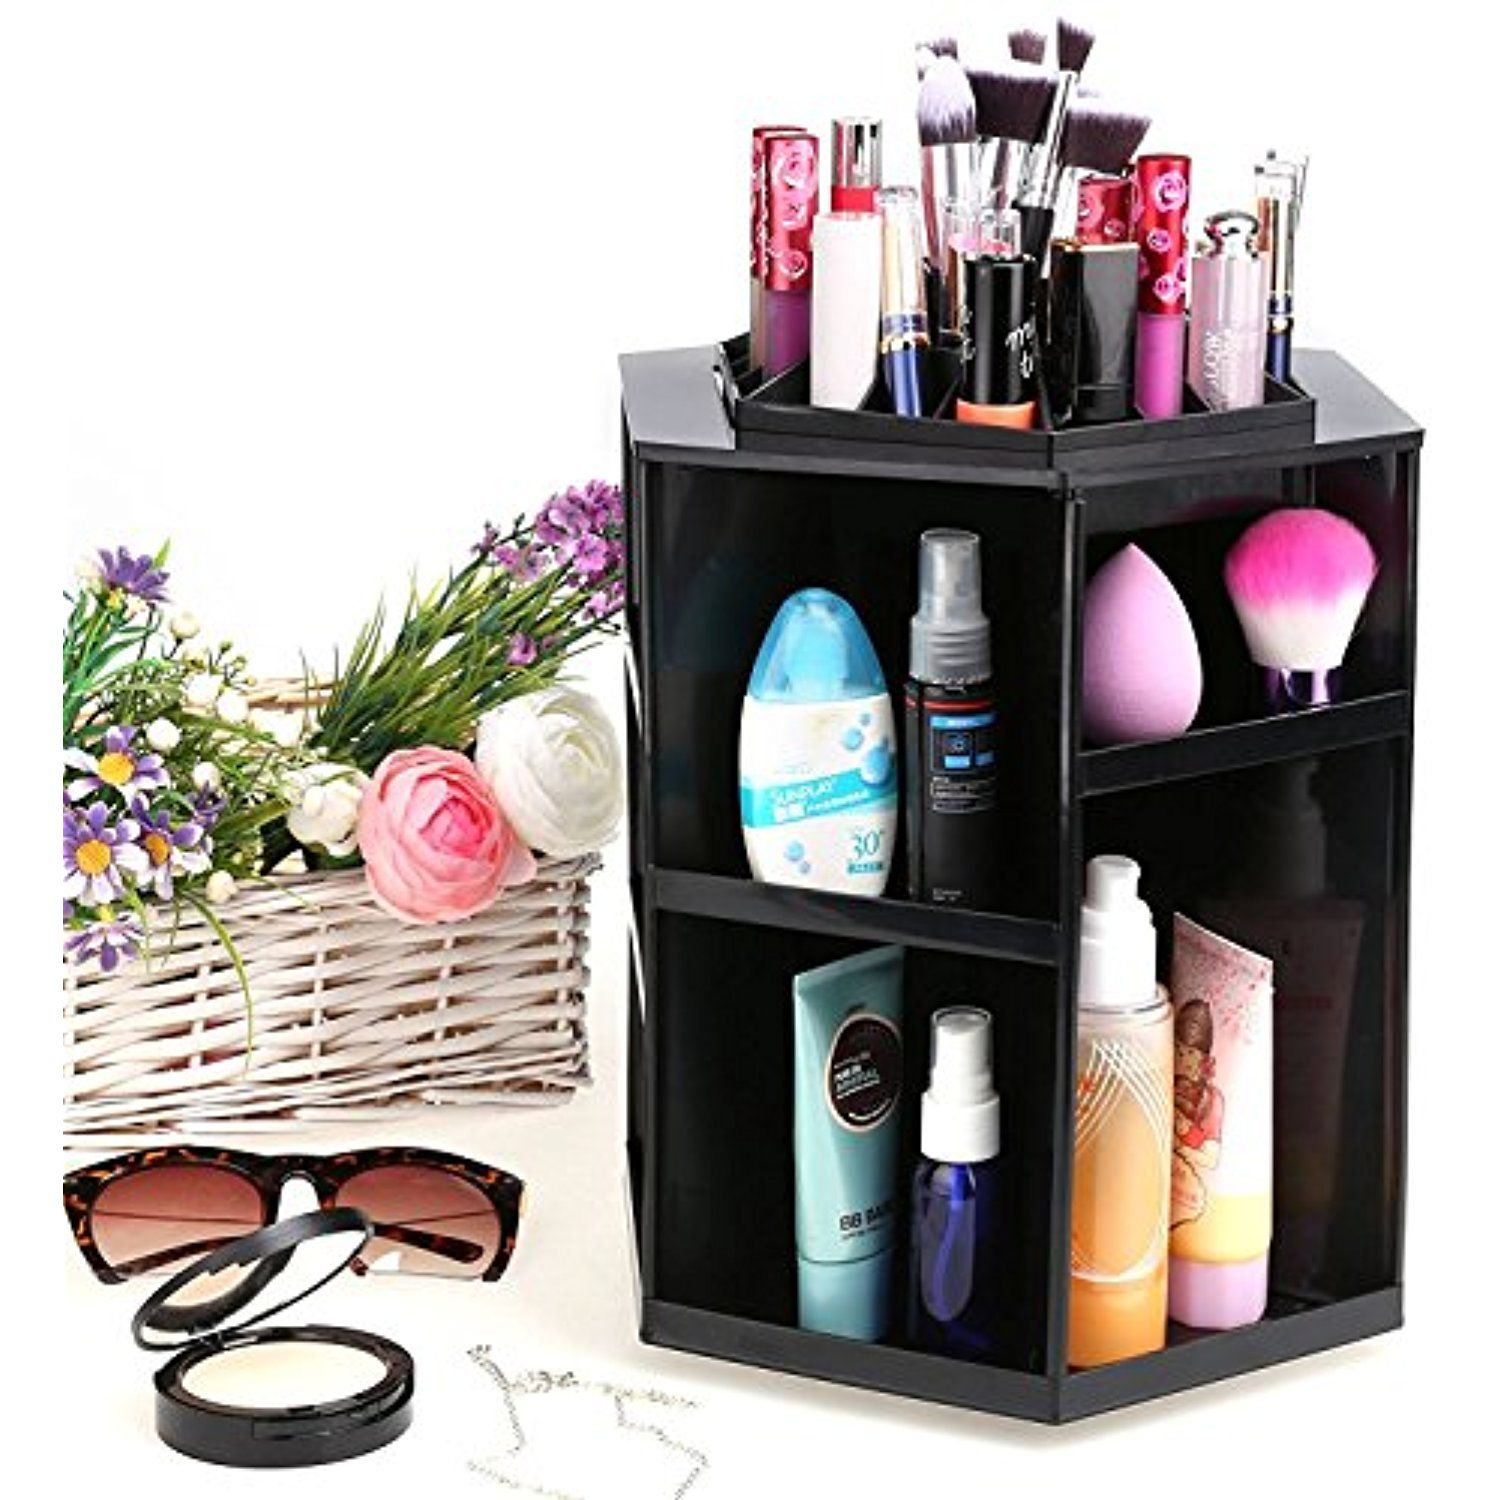 Homdox Makeup Organizer 360 Degree Rotating Cosmetic Storage Box Fits